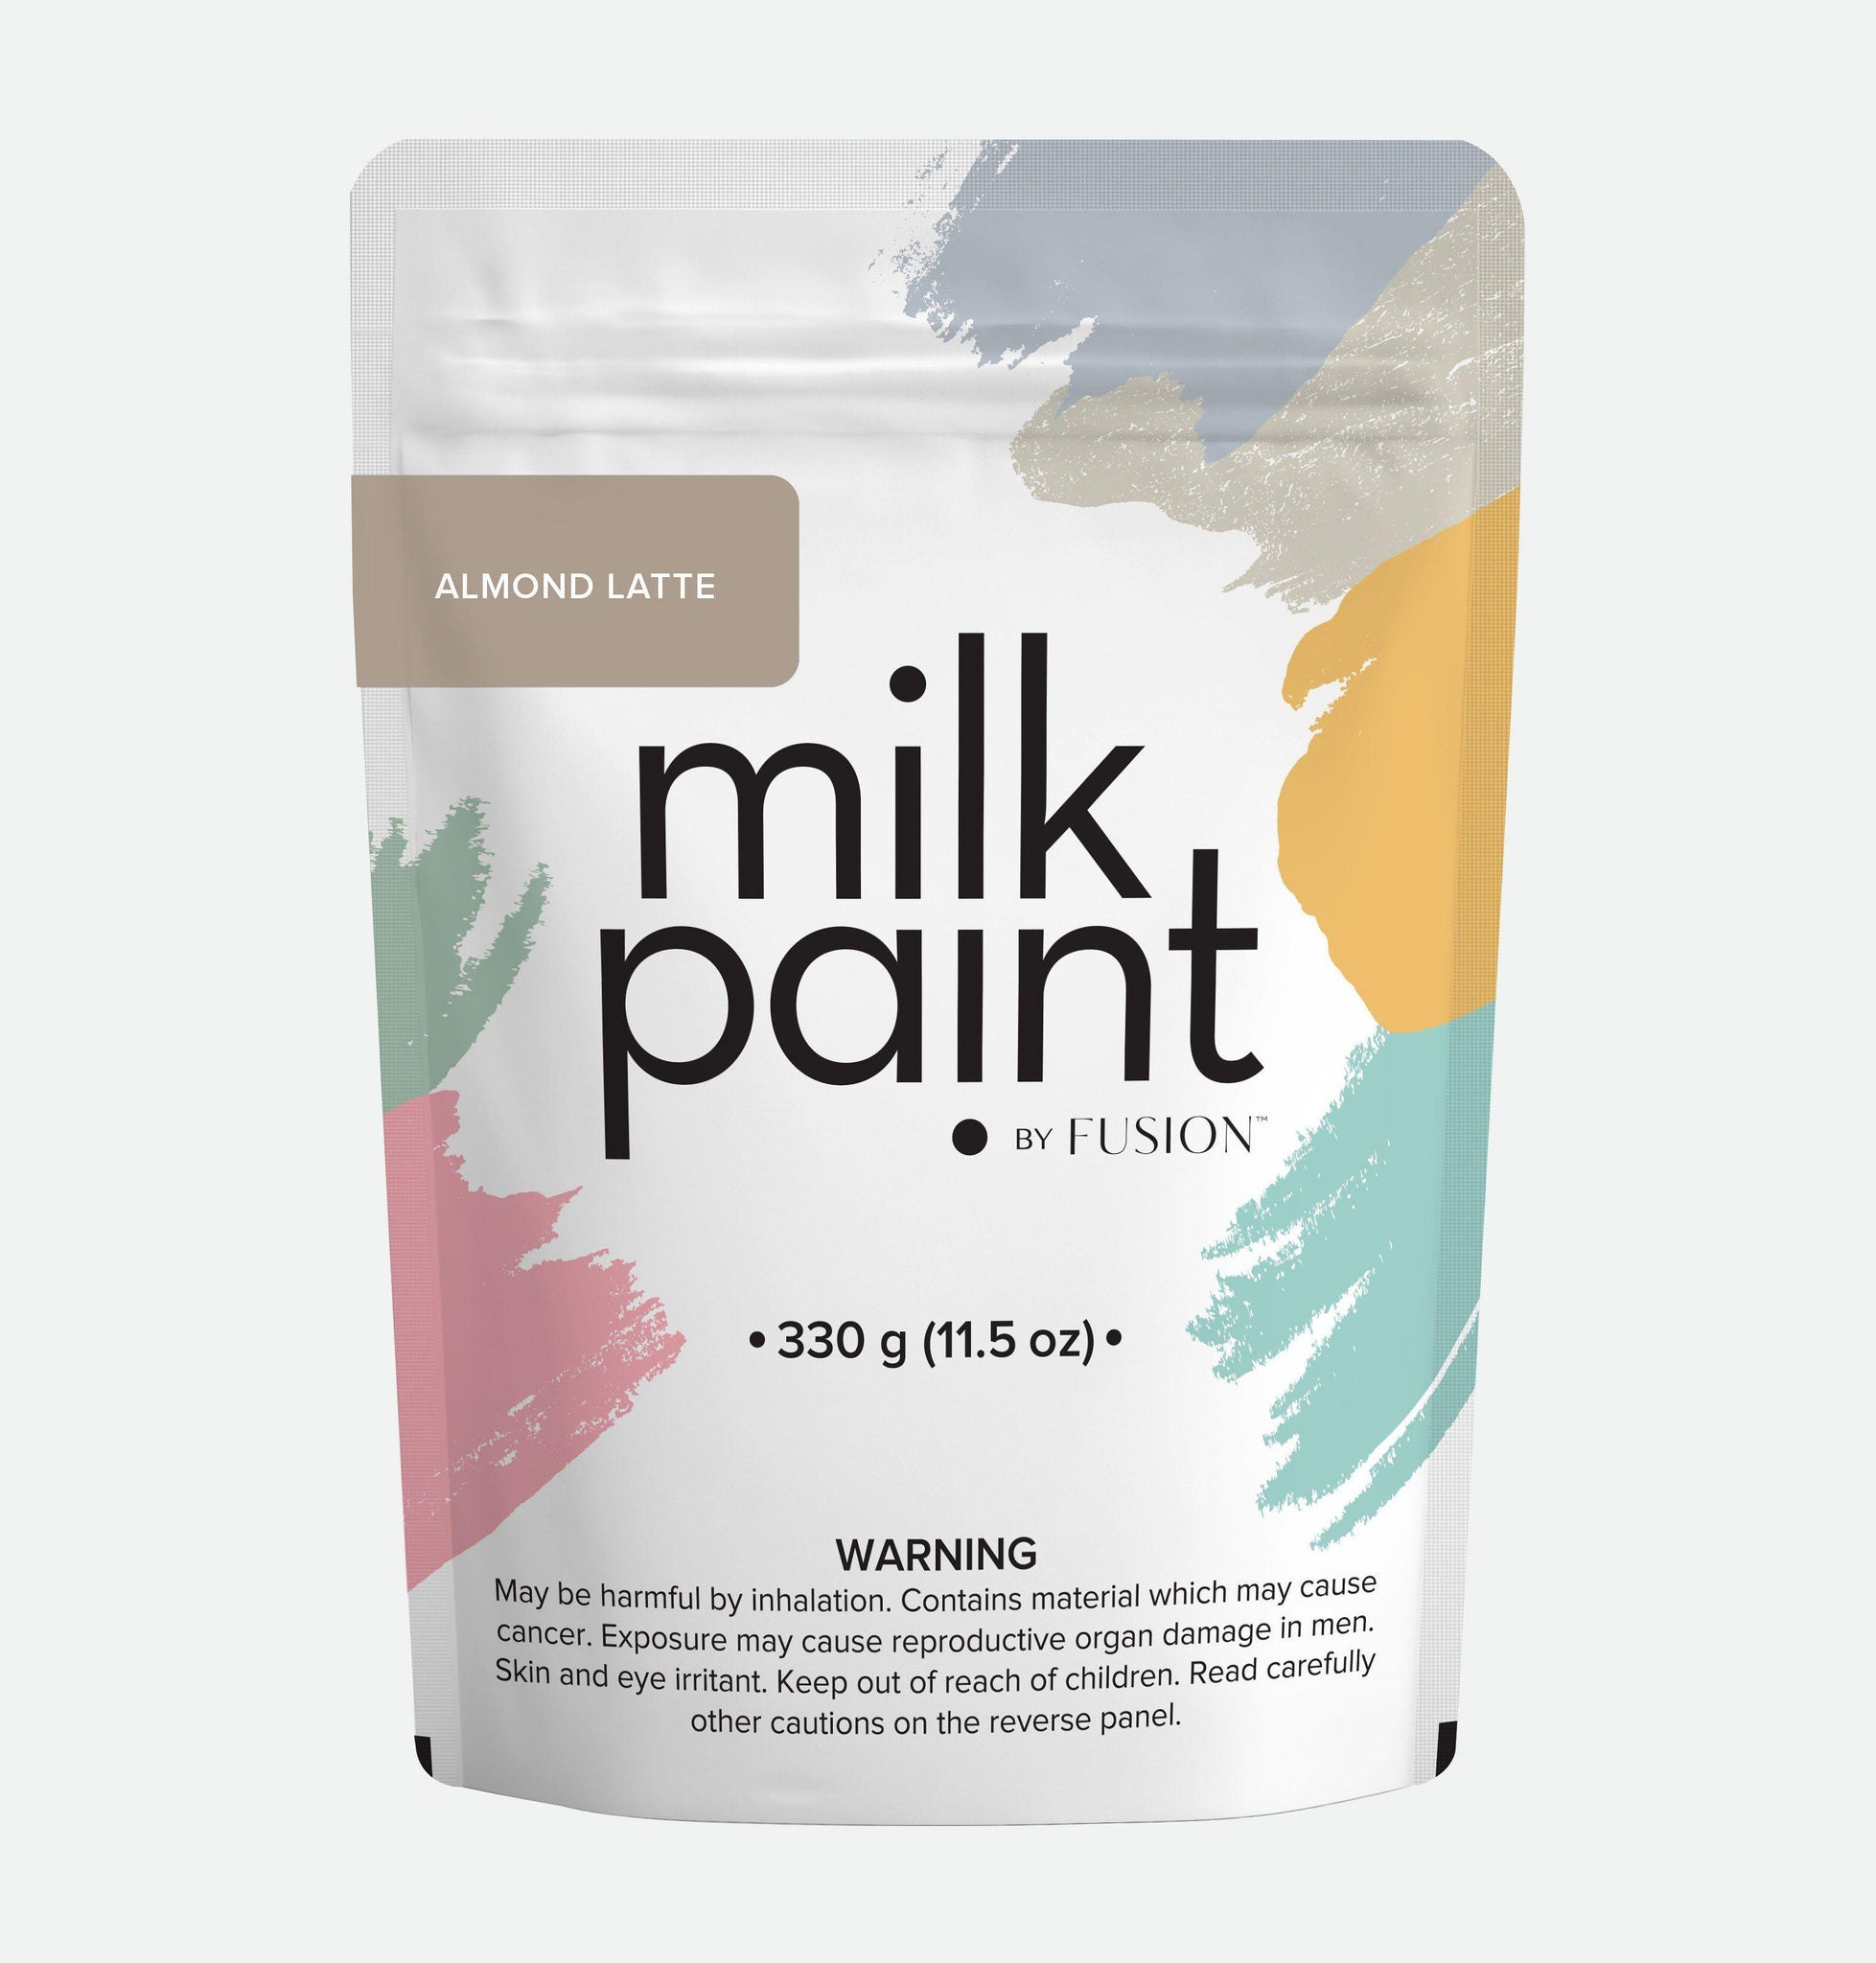 Almond Latte Milk Paint by Fusion